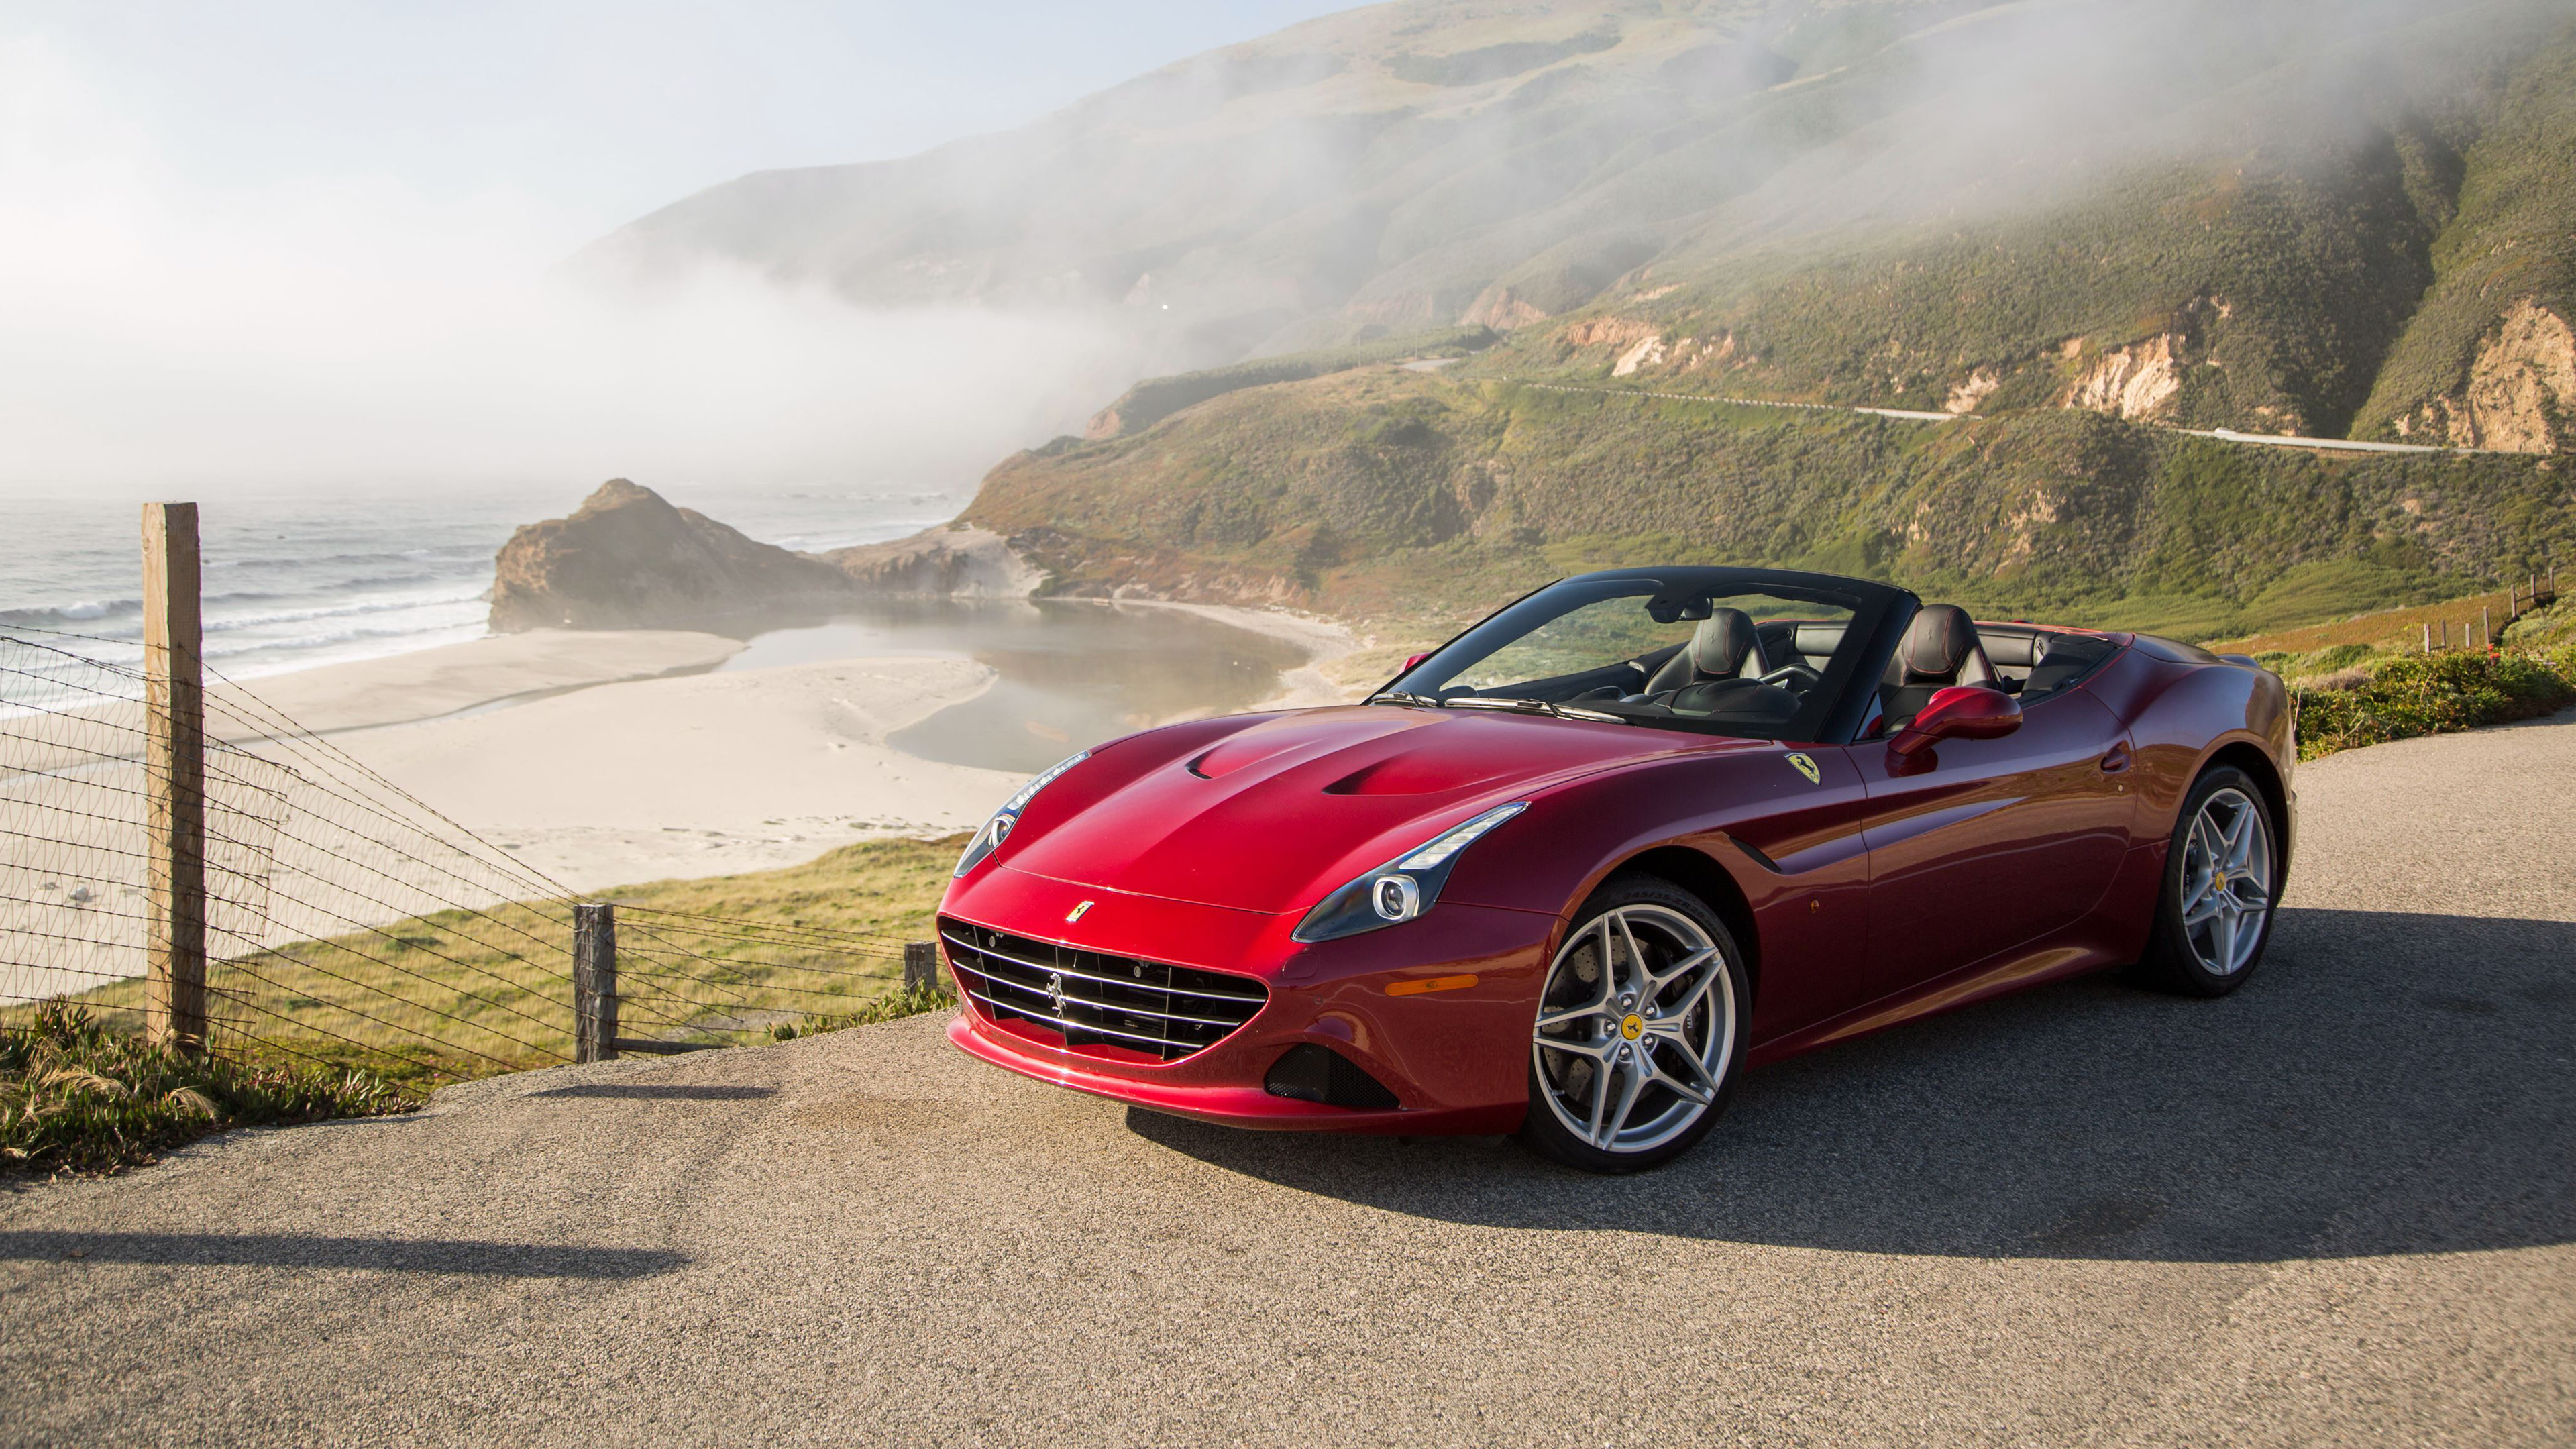 2016 Ferrari California T 4k Wallpaper Hd Car Wallpapers